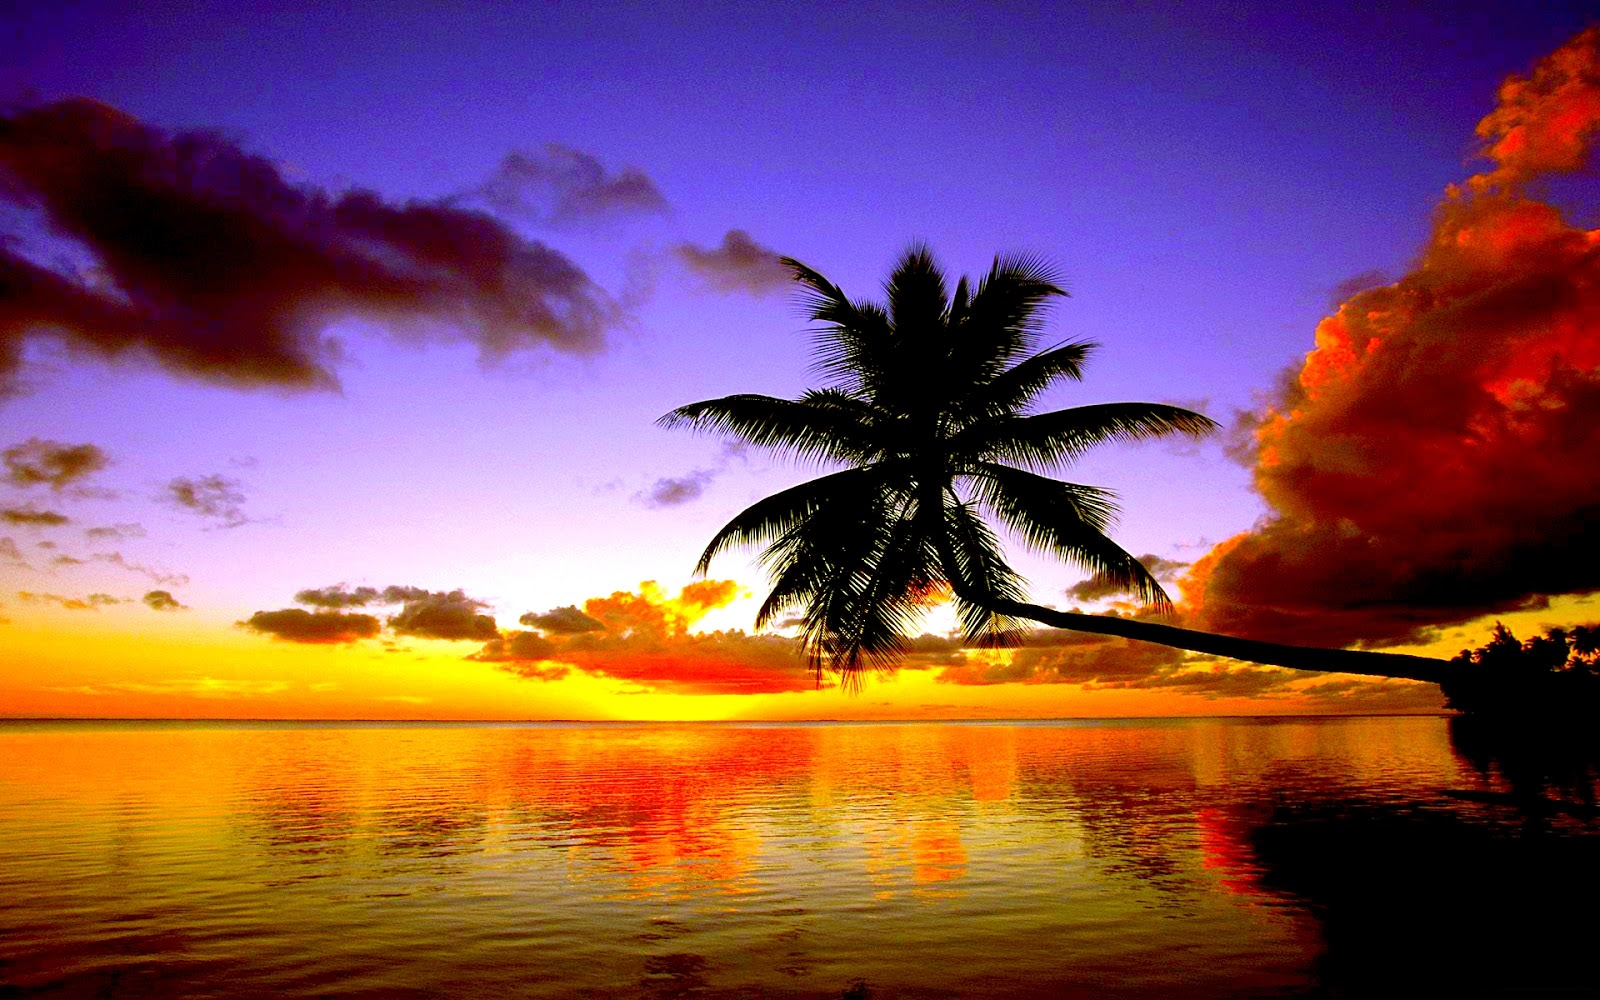 Sunset Hd Wallpapers 16001000 124723 HD Wallpaper Res 1600x1000